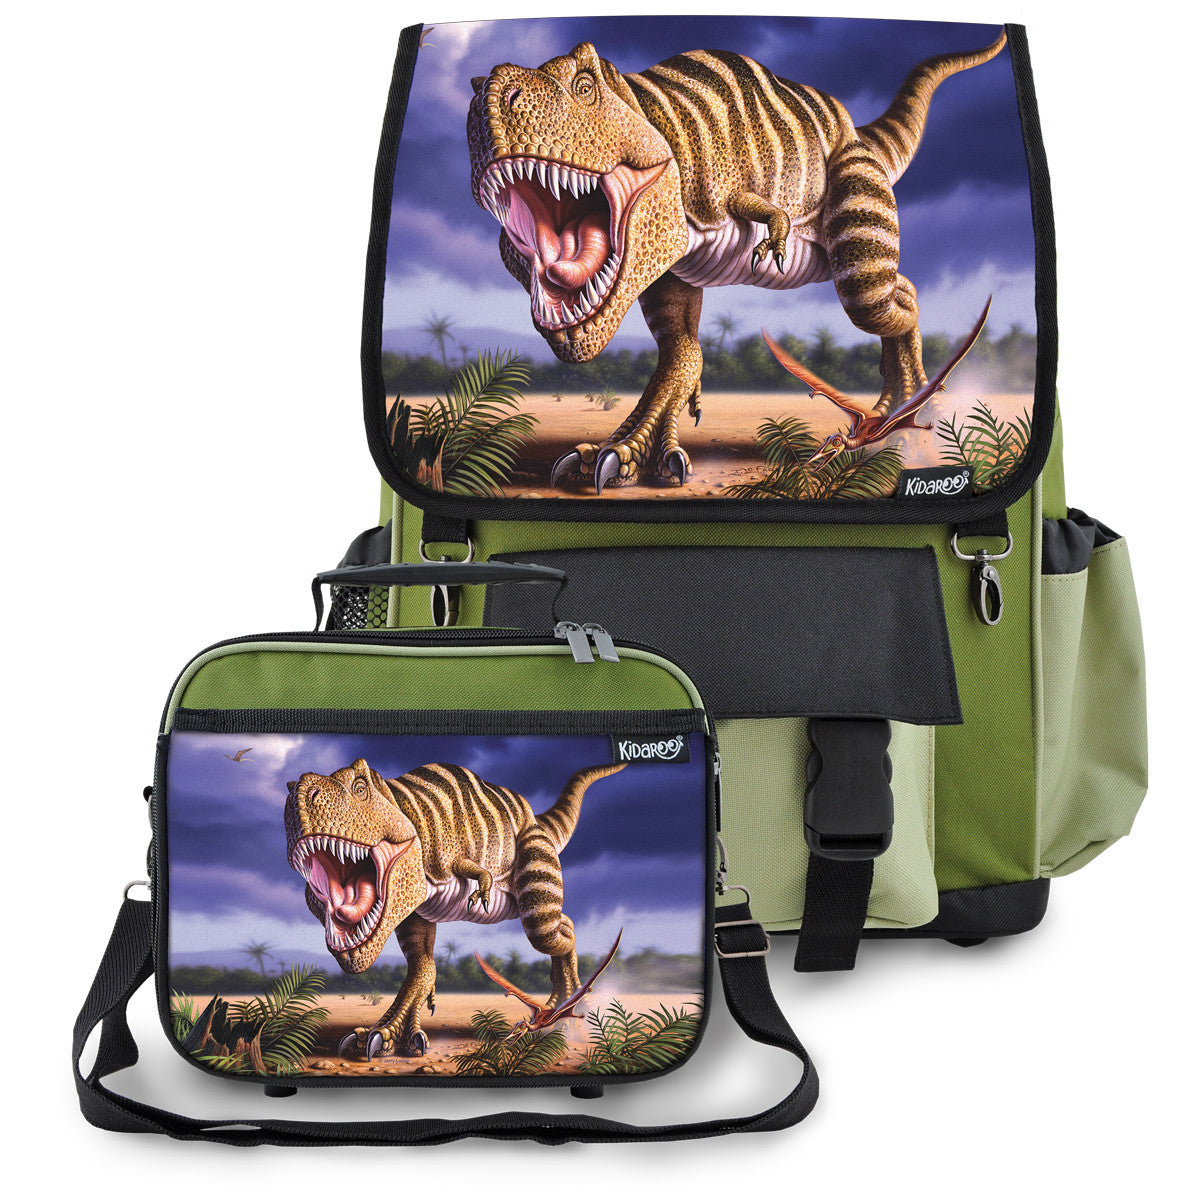 Kidaroo Khaki Green Stripped T-Rex Dinosaur Backpack & Lunchbox for Boys, Girls, Kids